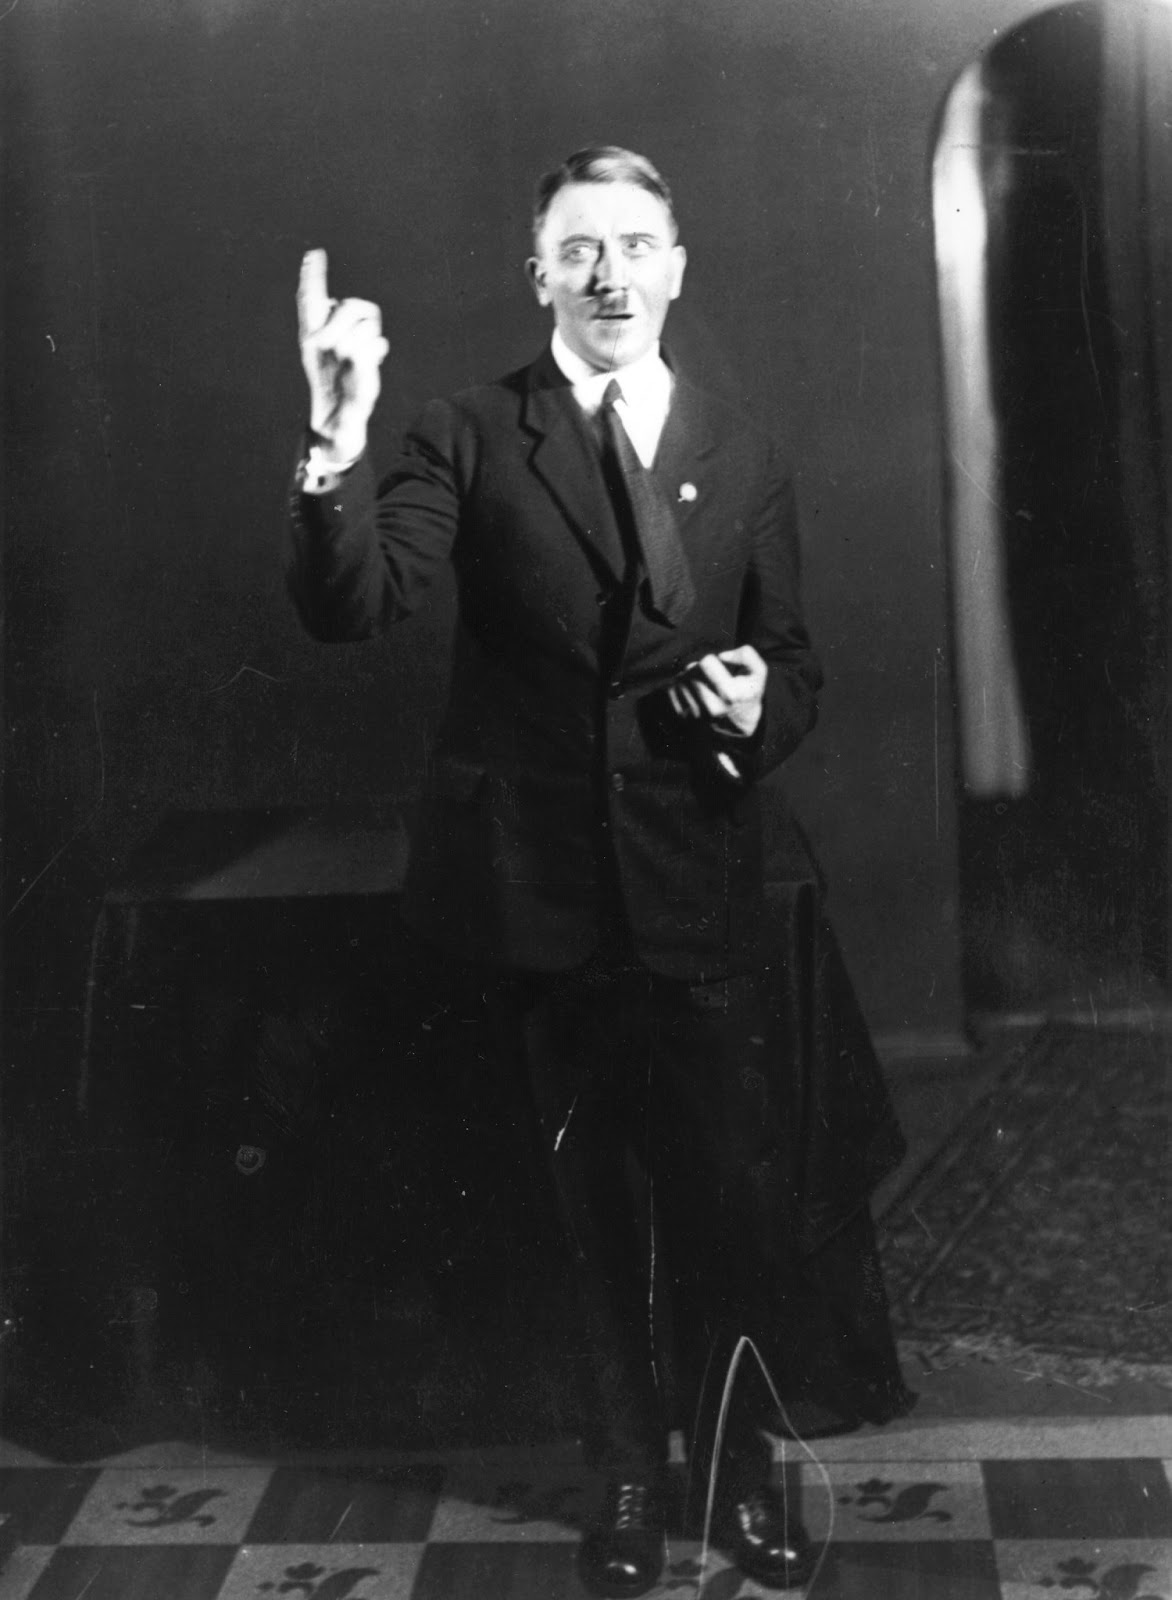 Hitler rehearsing his speech in front of the mirror, 1925